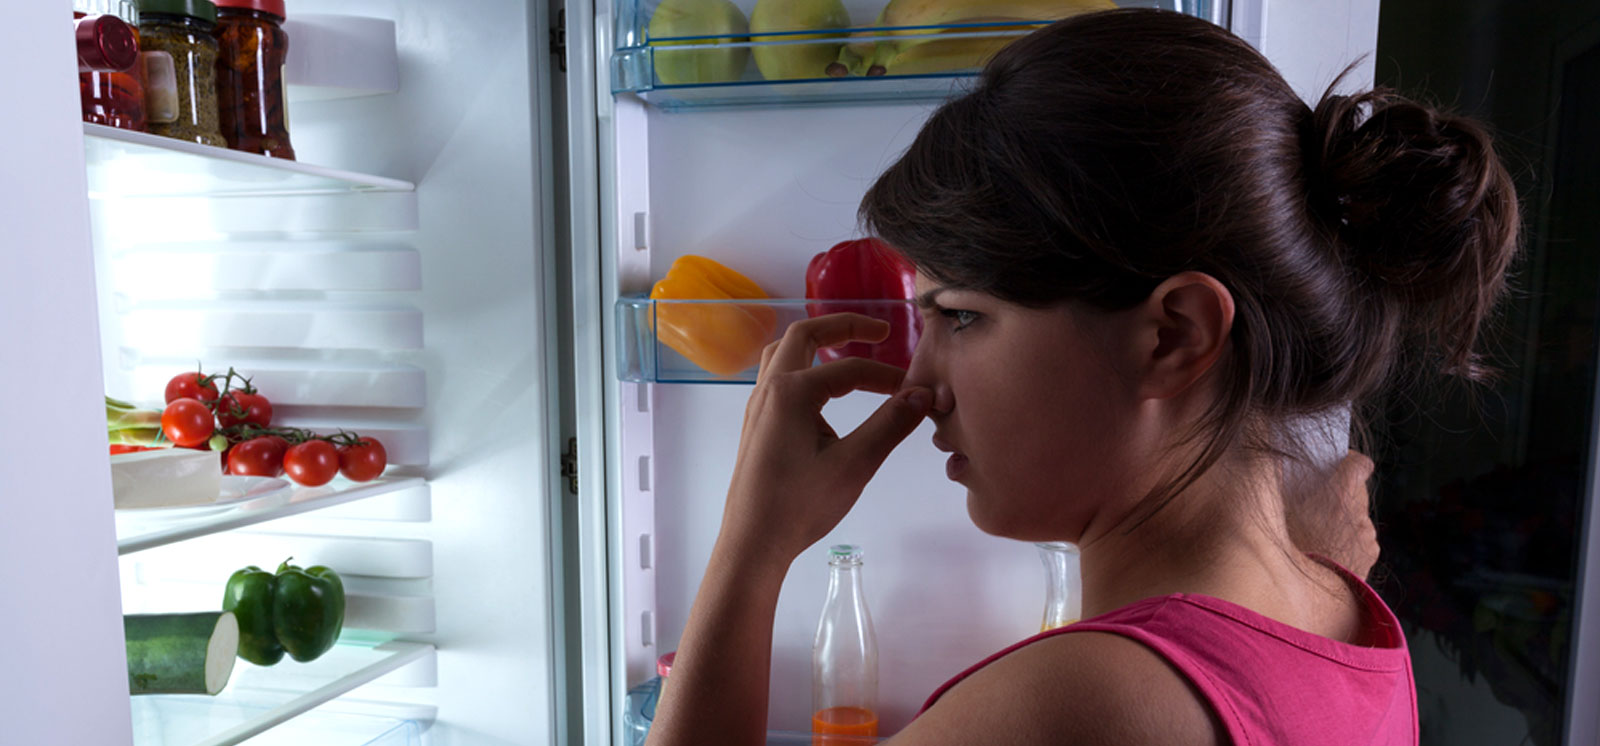 HOW TO REMOVE ODOUR FROM A REFRIGERATOR – SMELLY FRIDGE